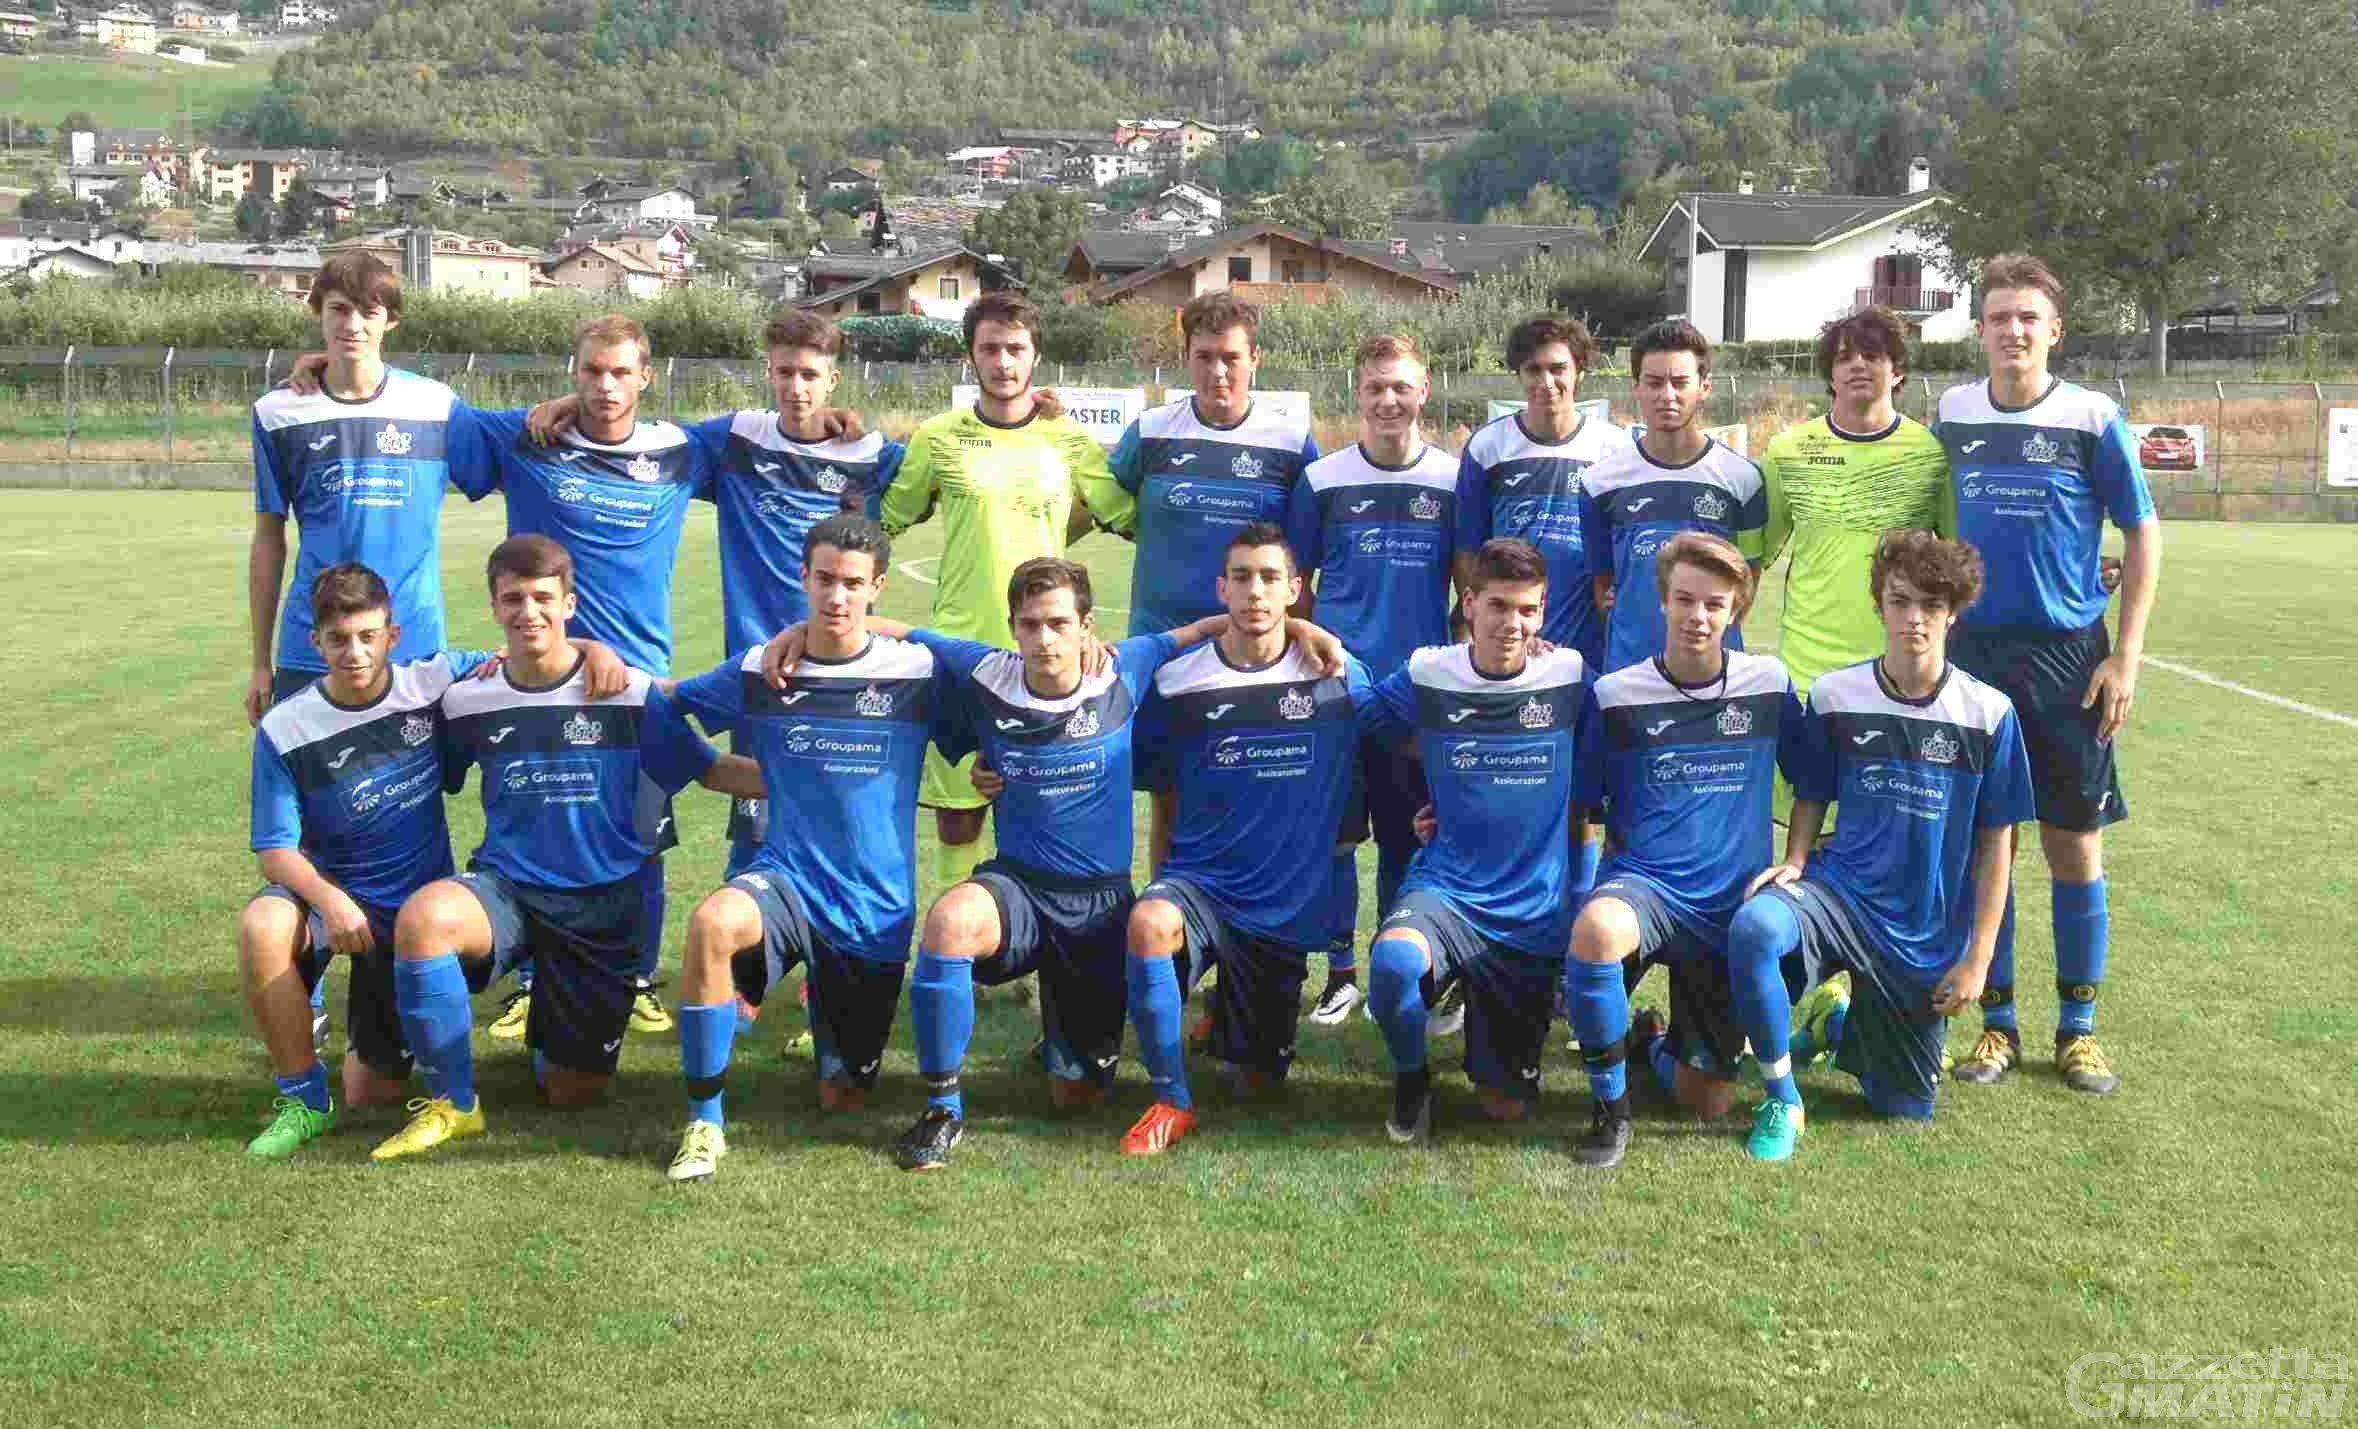 Calcio giovanile: qualificata la Juniores del Grand Paradis